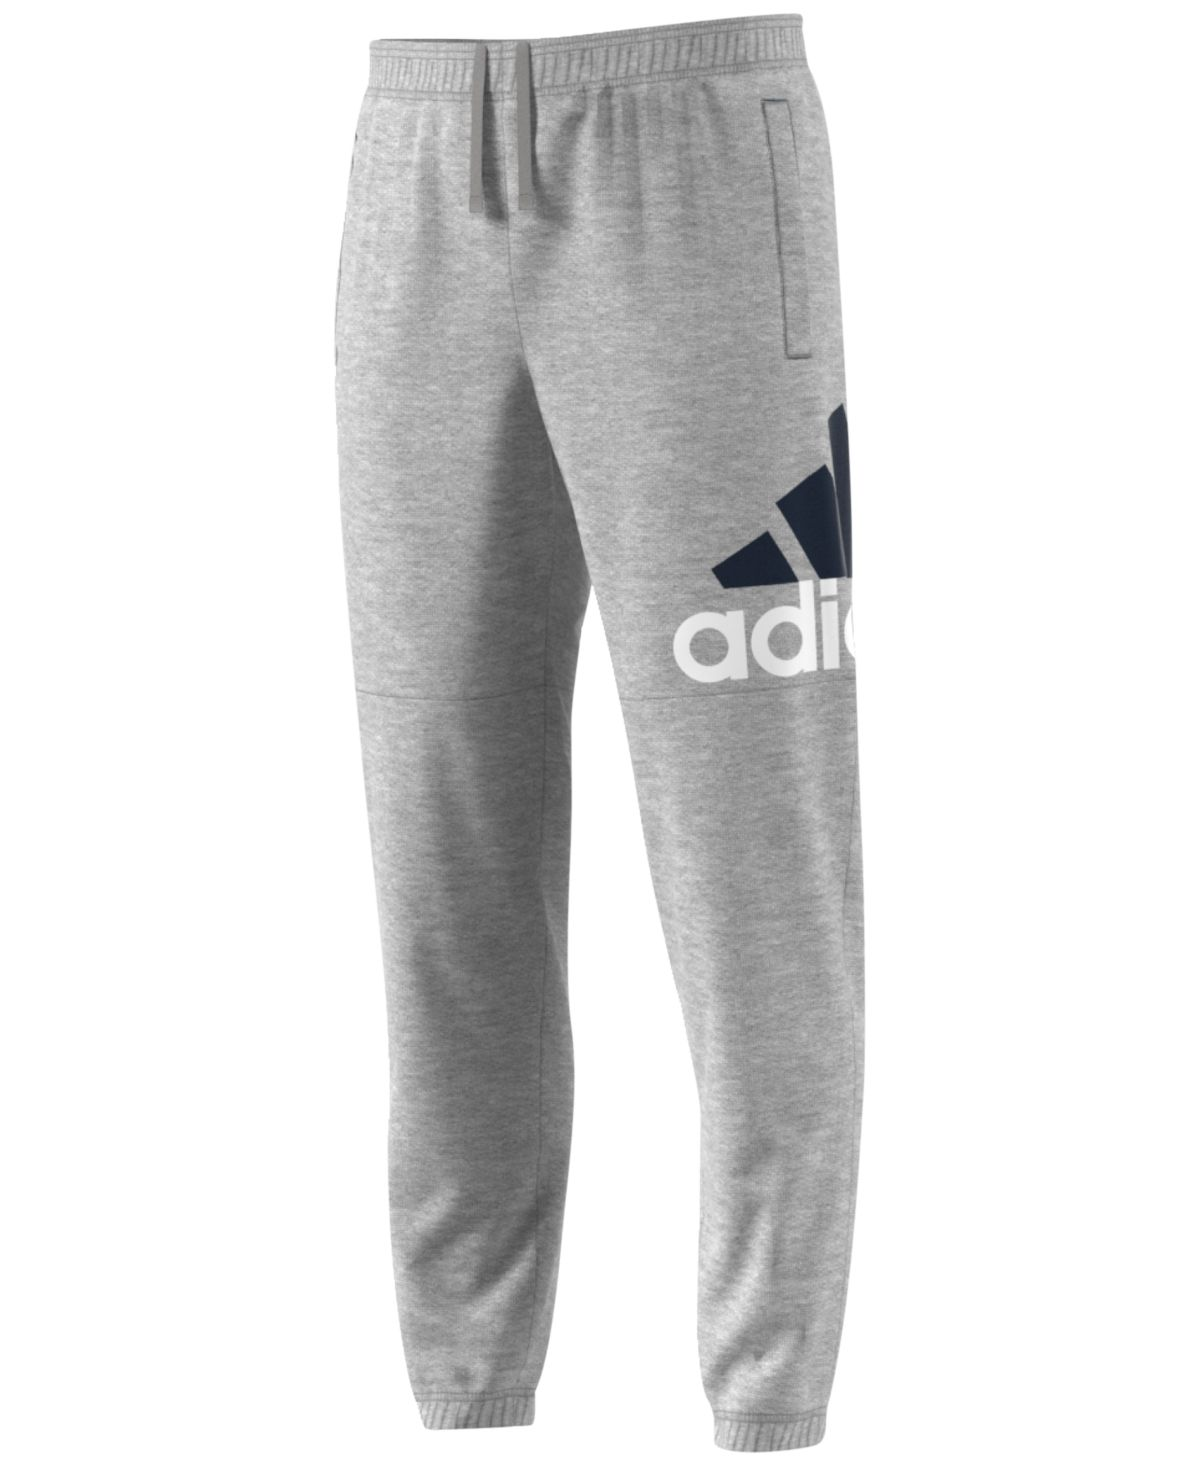 adidas Men's Essential Jersey Pants & Reviews - All Activewear ...